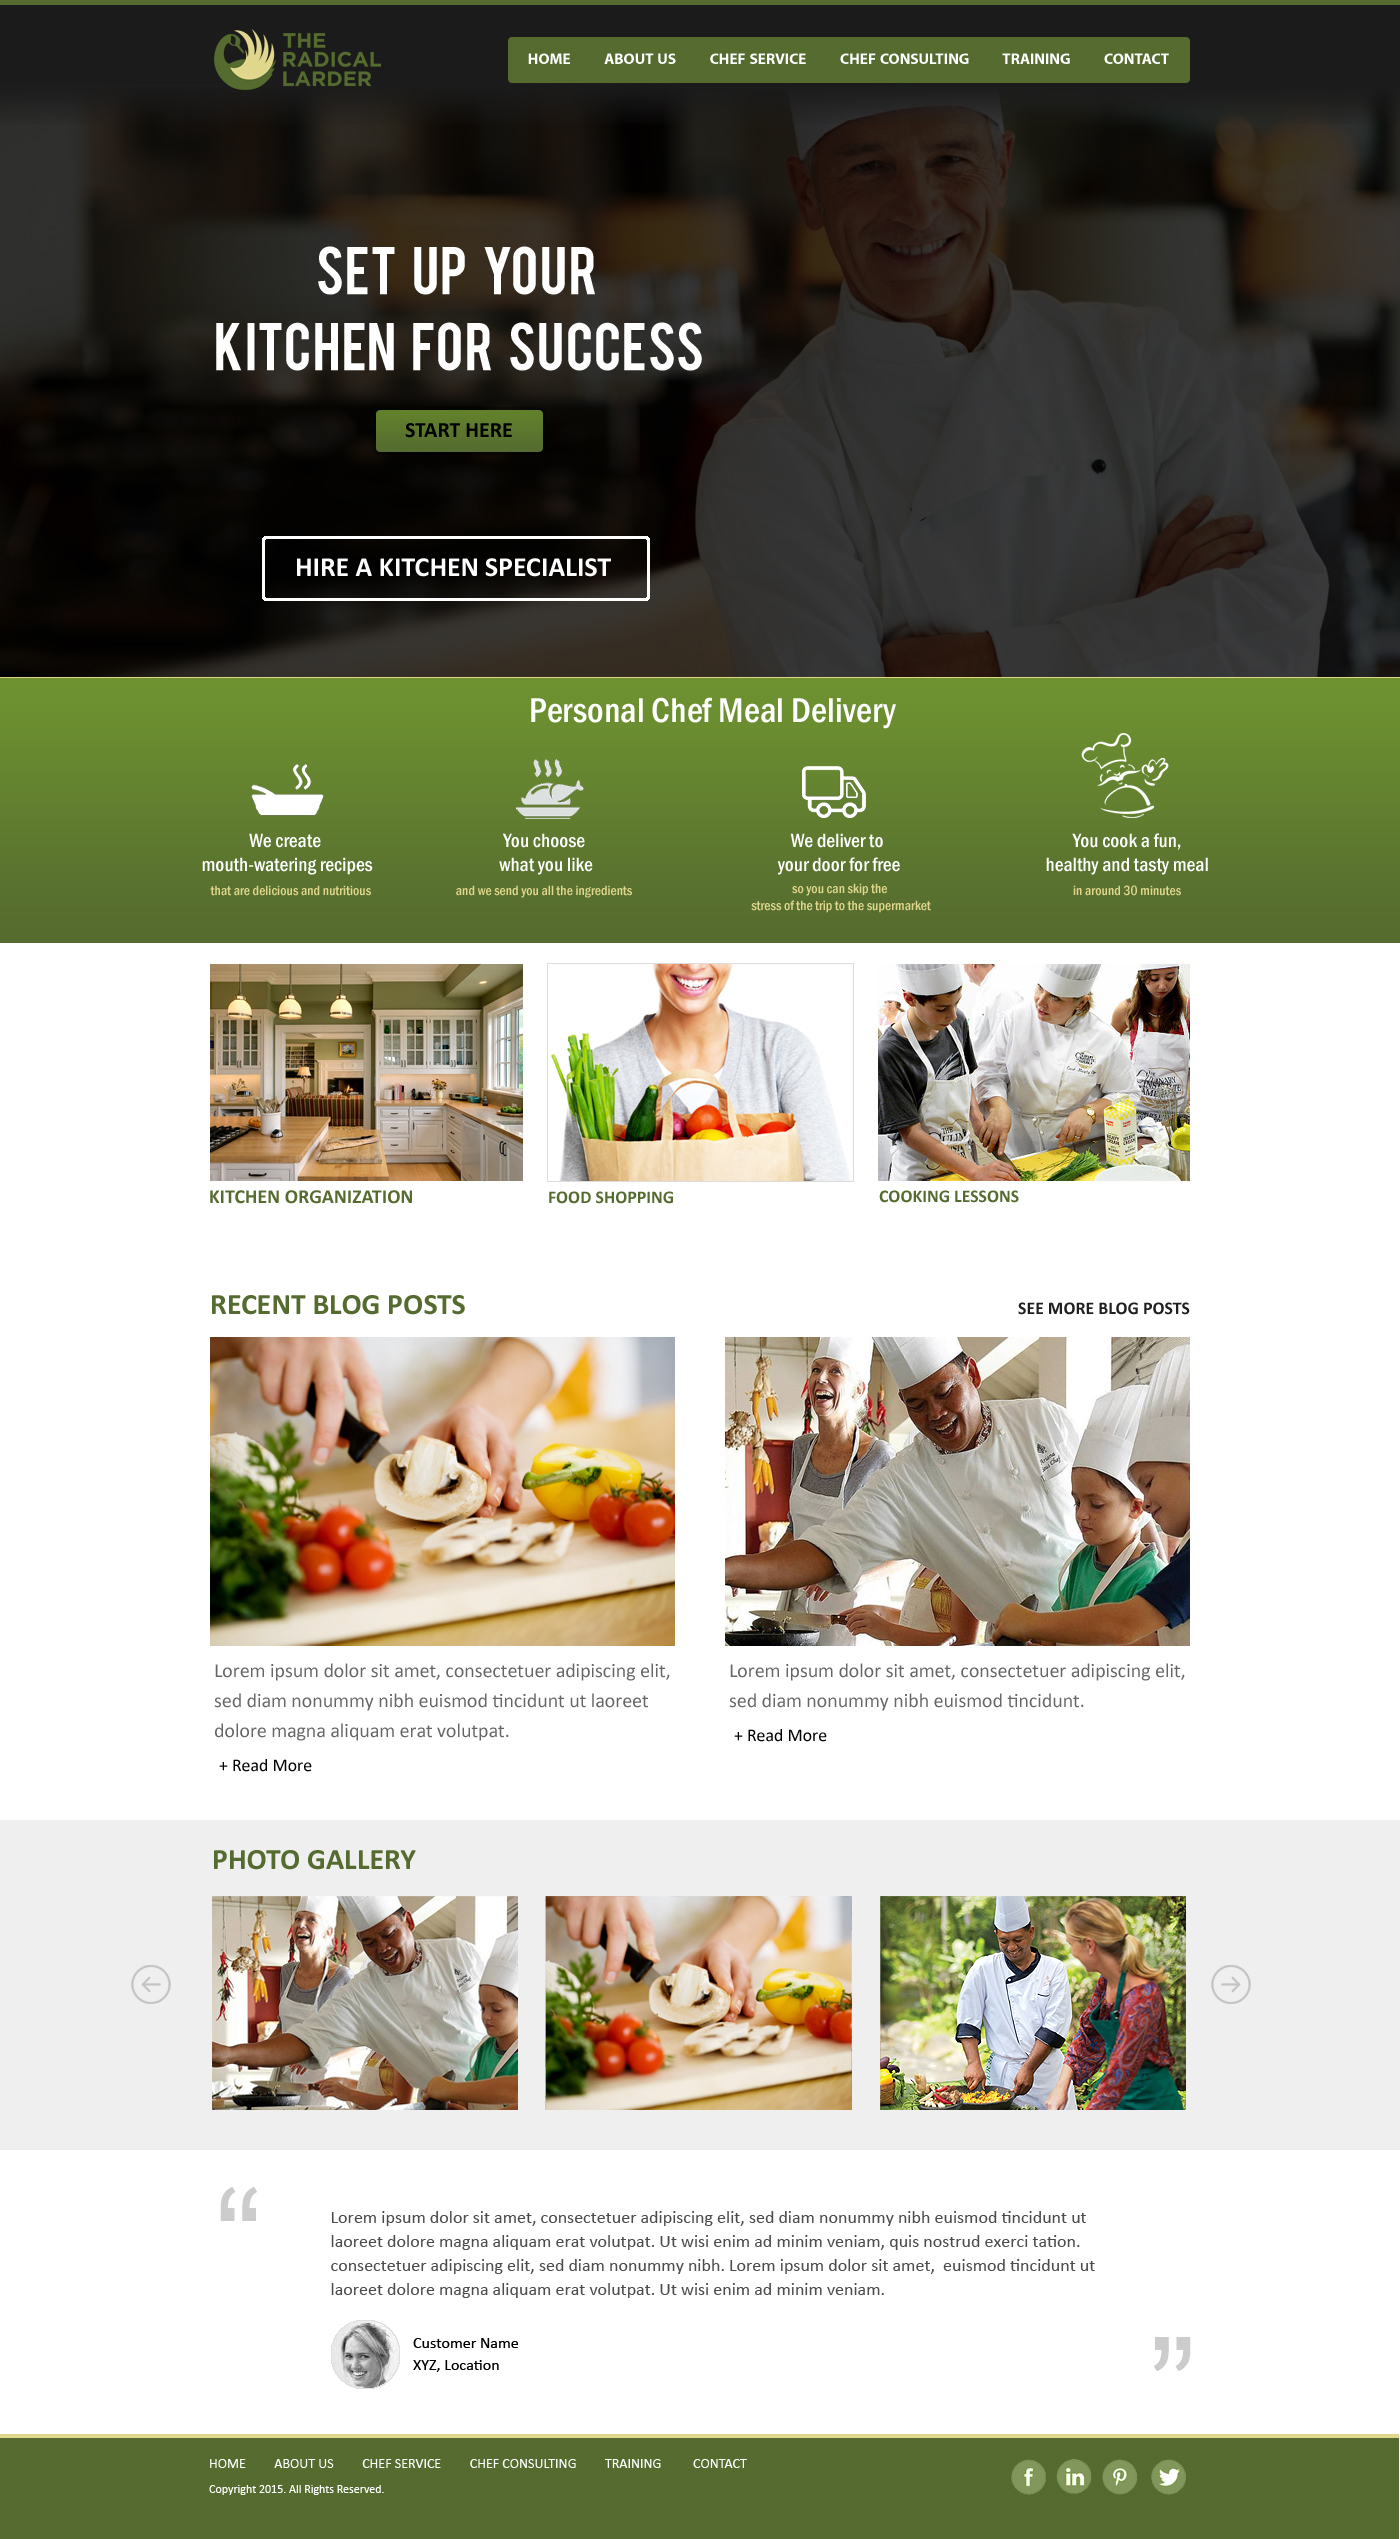 Web Page Design by webexprtz - Entry No. 78 in the Web Page Design Contest The Radical Larder Web Page Design.